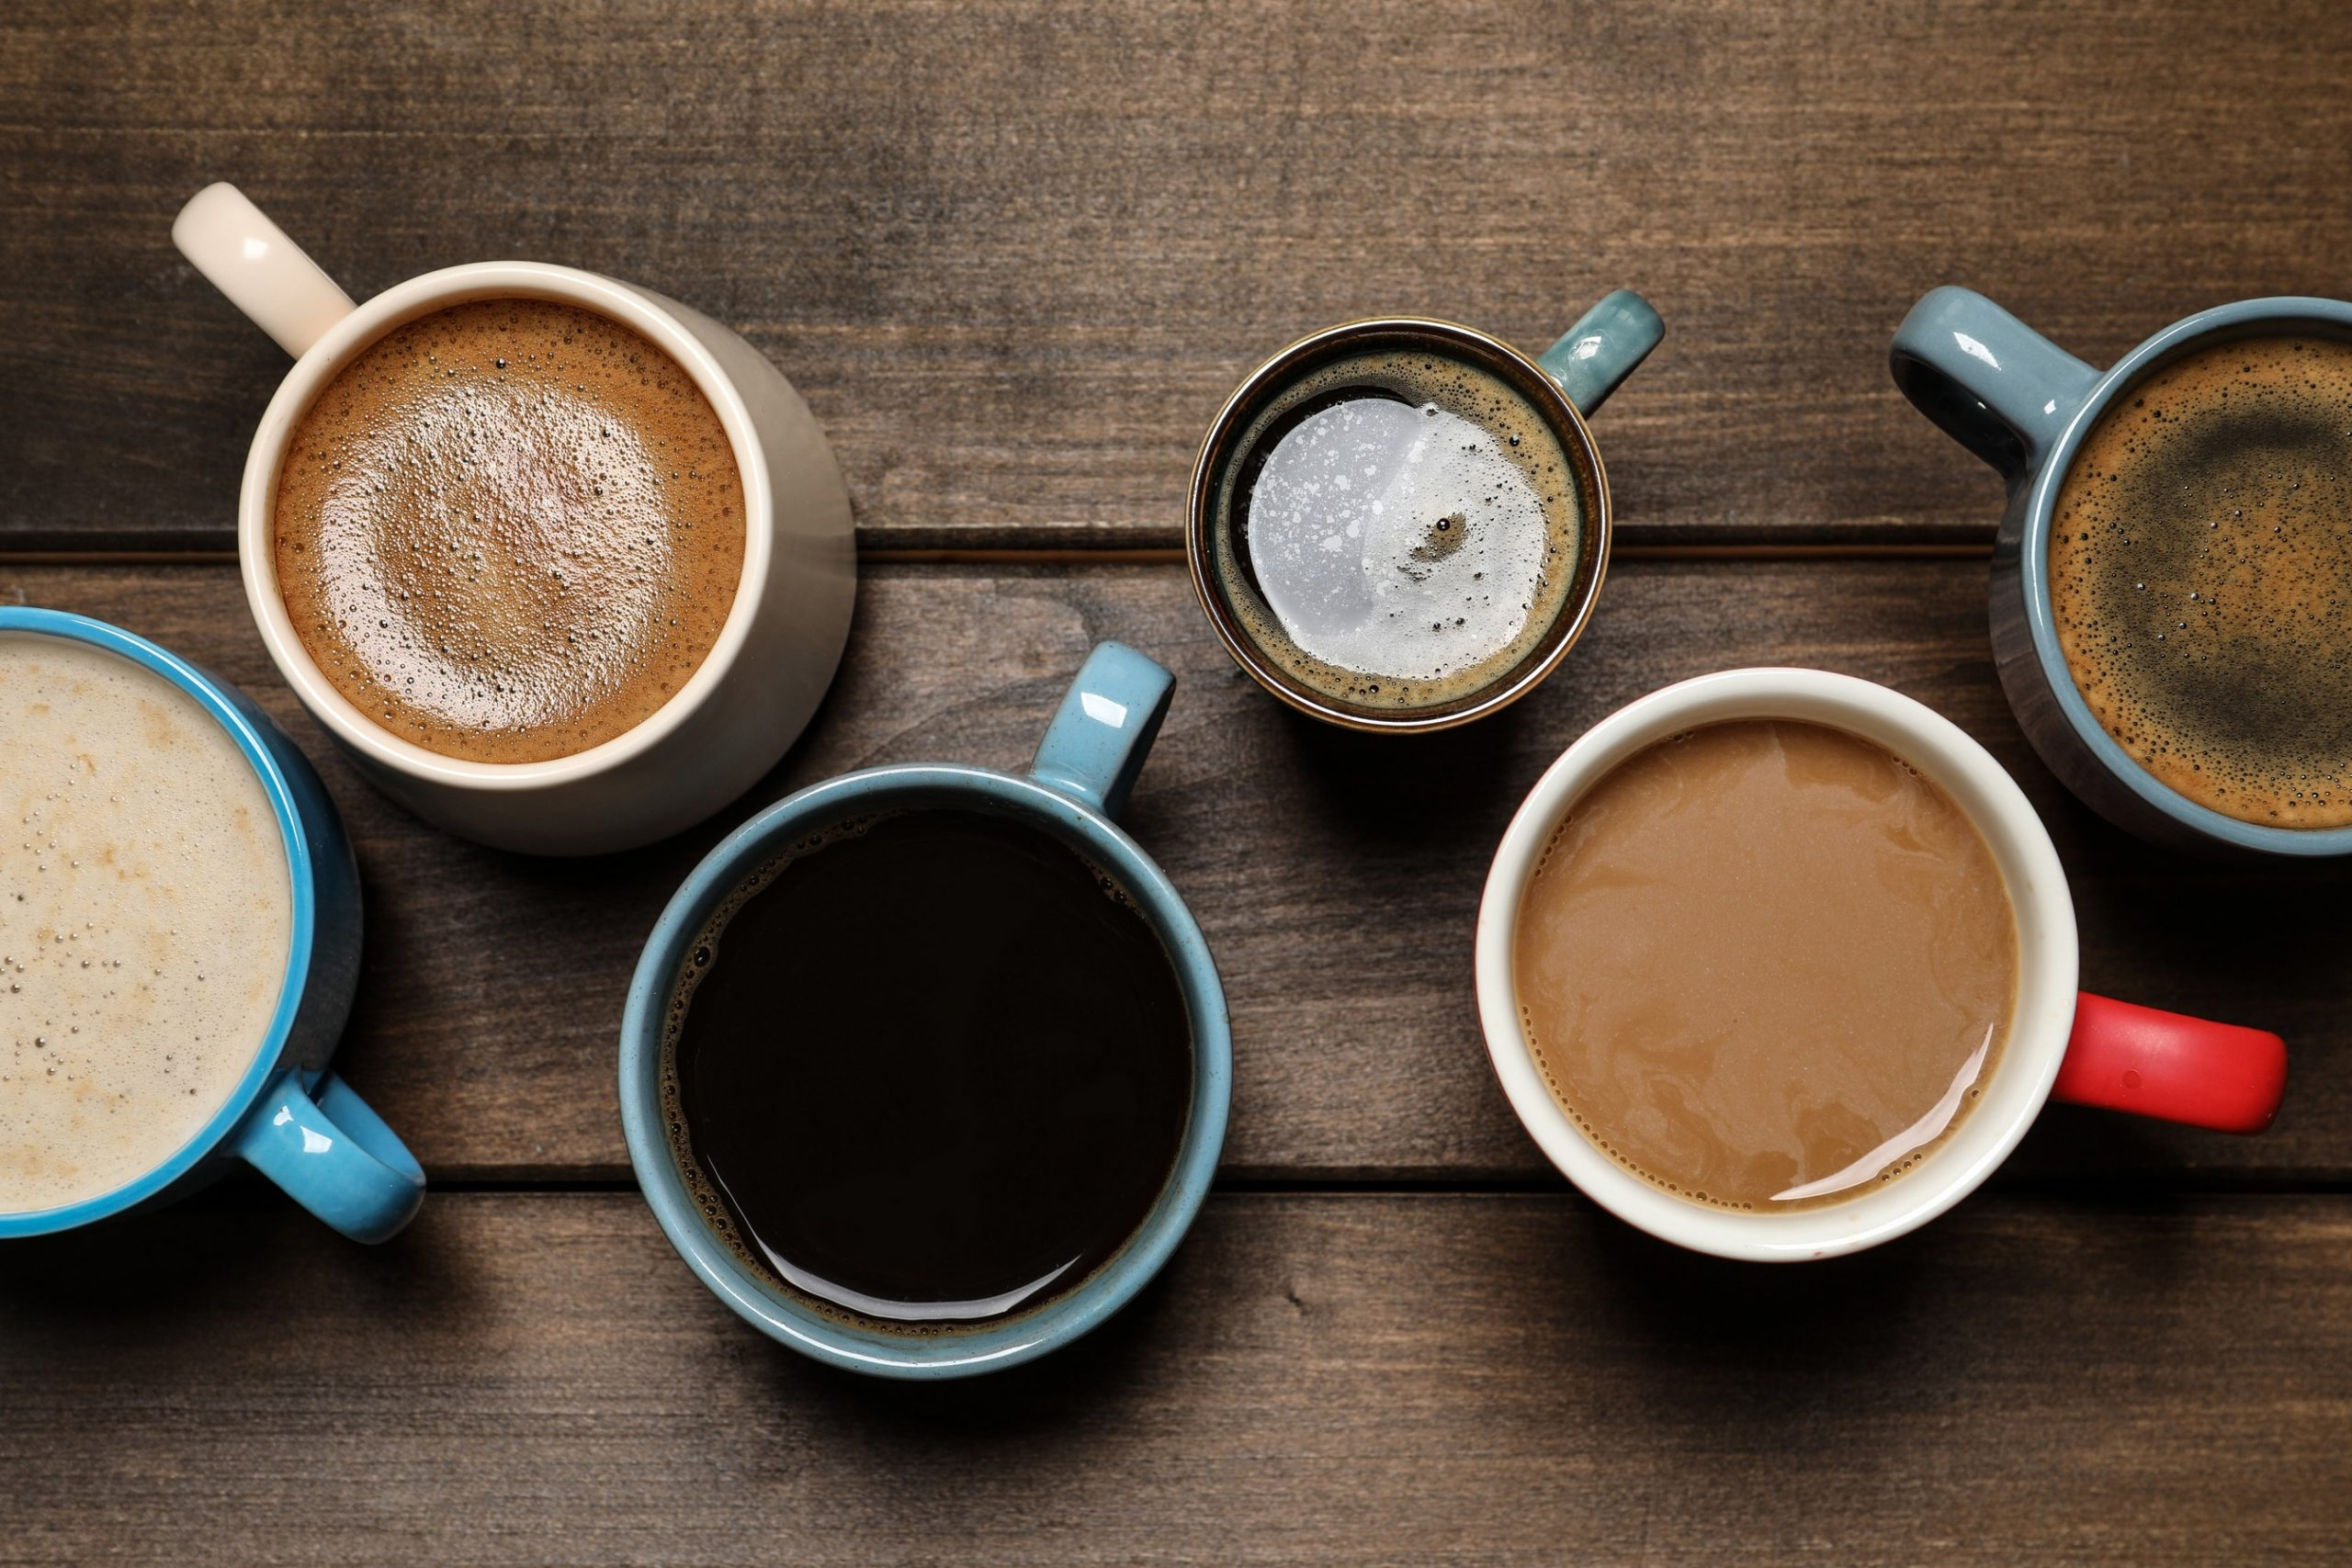 Auburn Workplace Culture | Single-Cup Coffee Service | Employee Benefit | Coffee Products